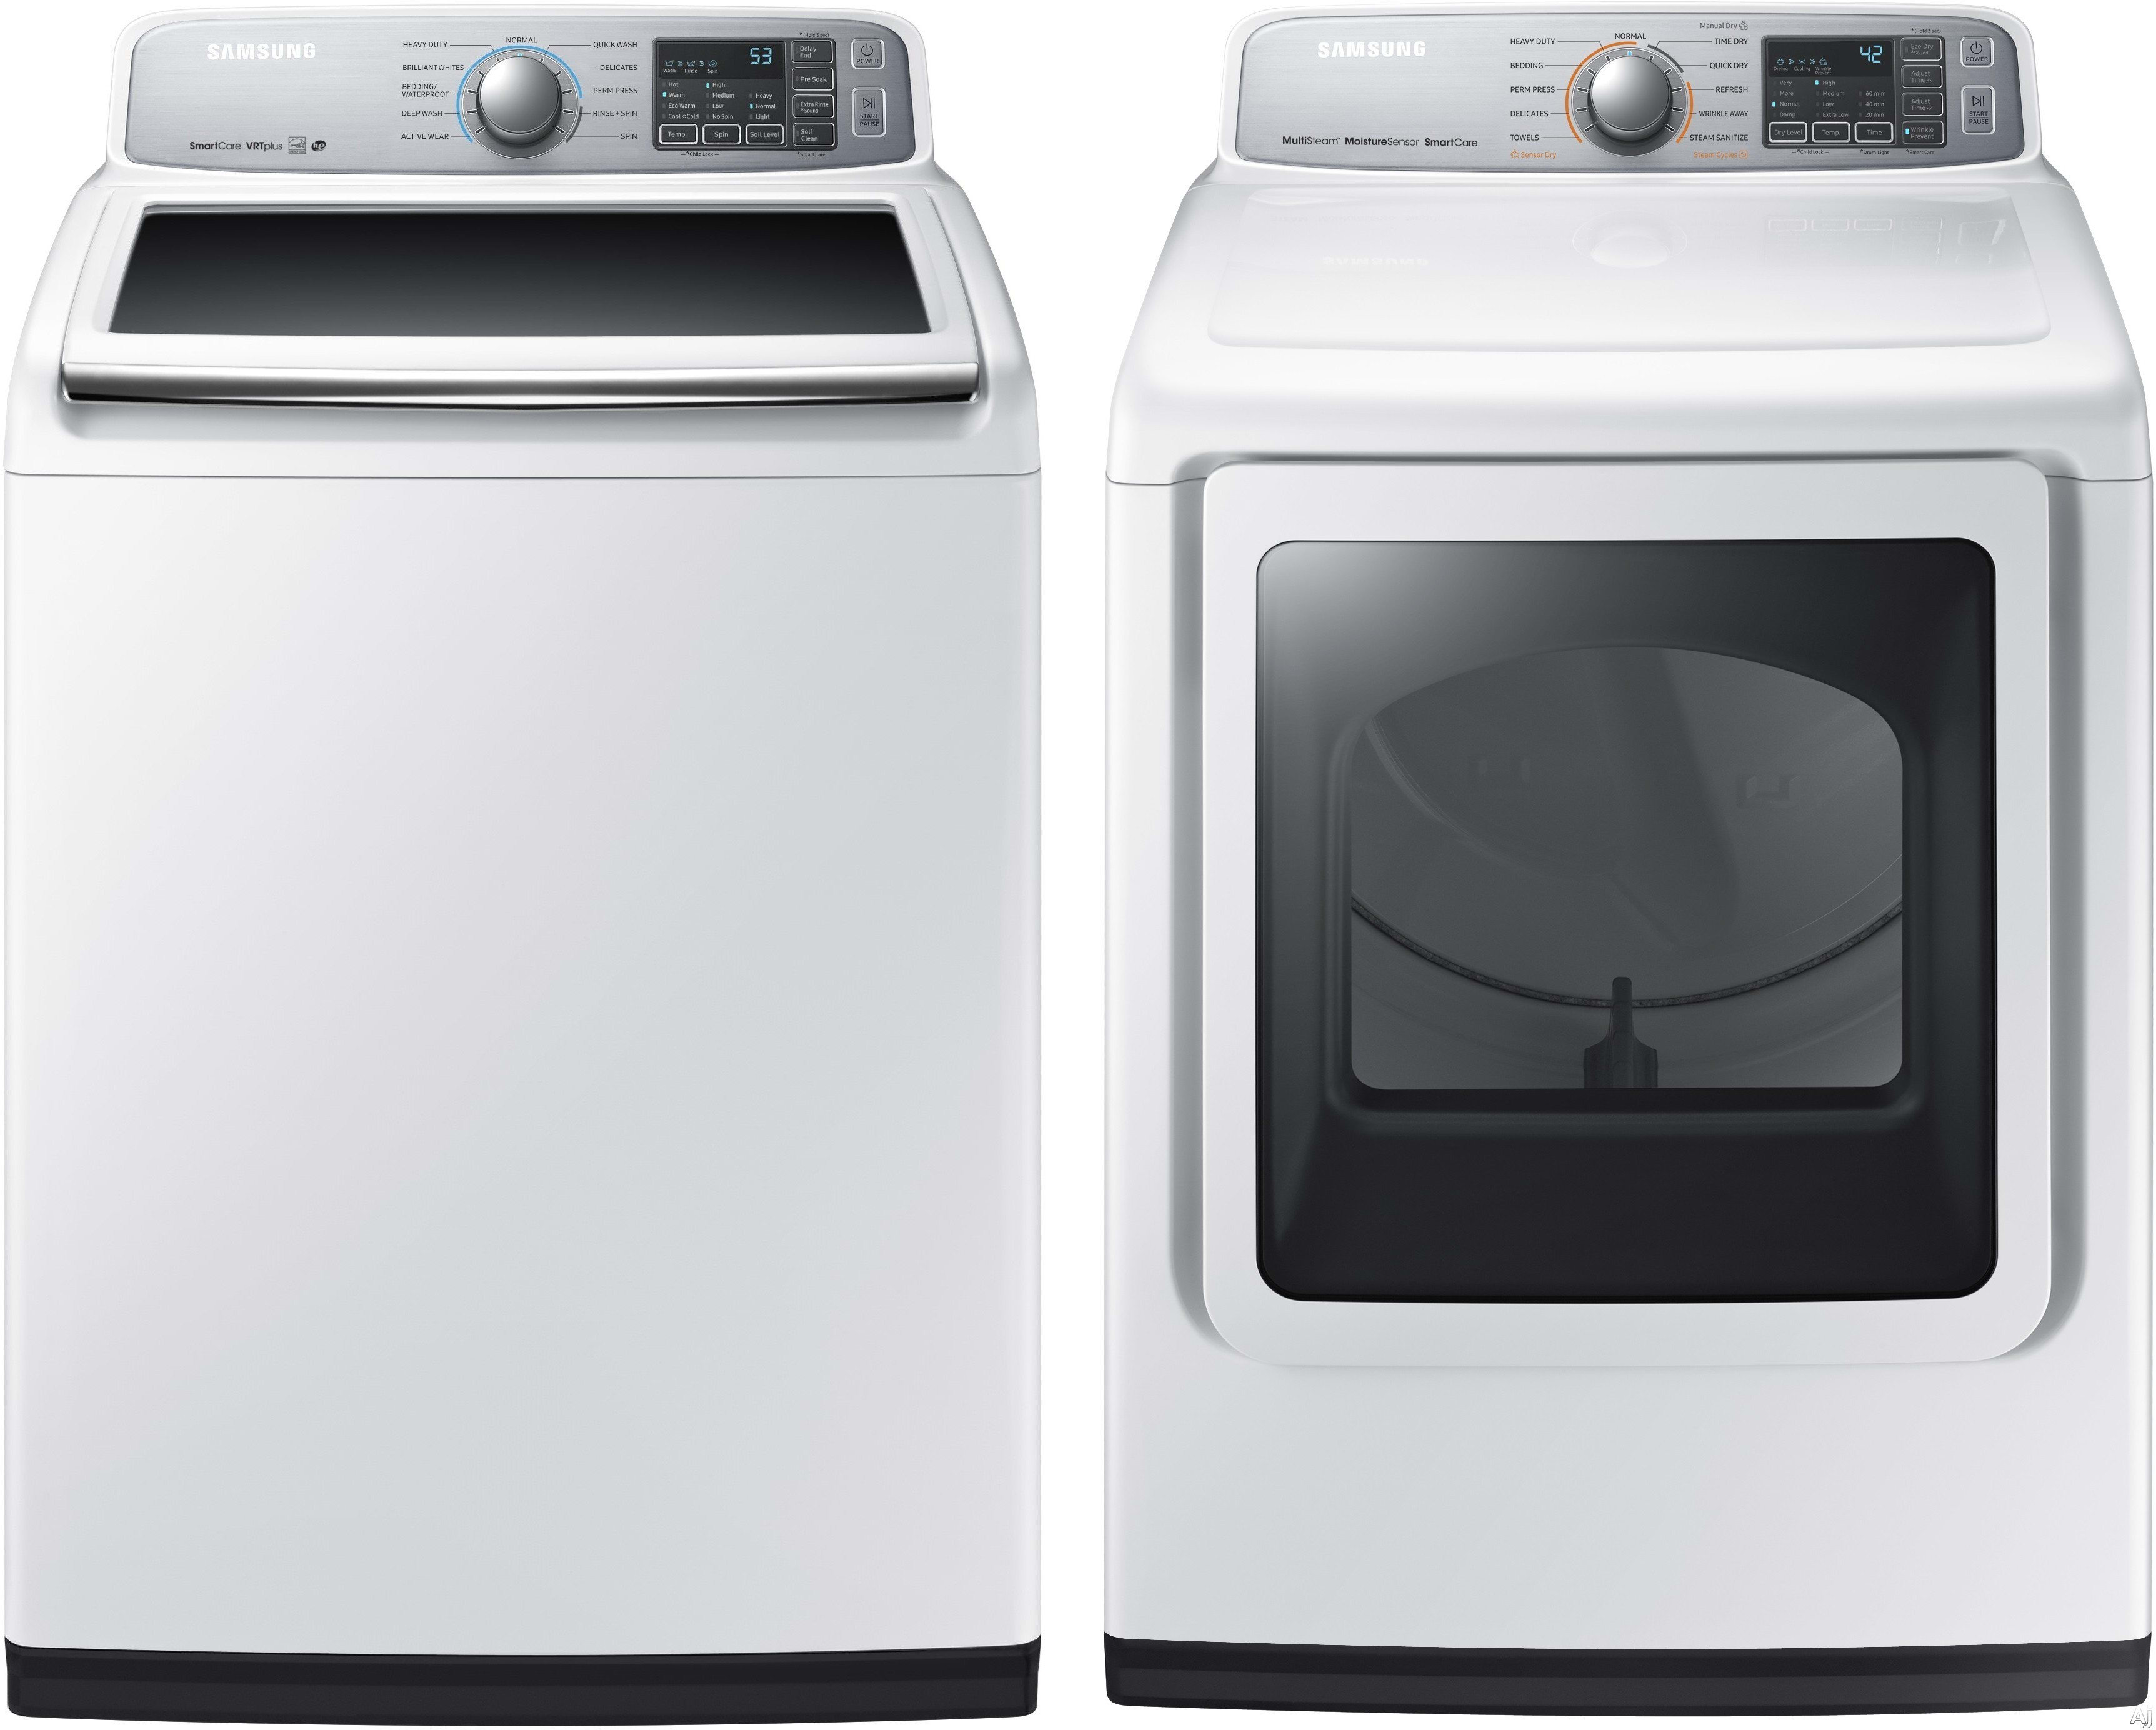 Samsung Sawadrew5 Washer Amp Dryer Set With Top Load Washer